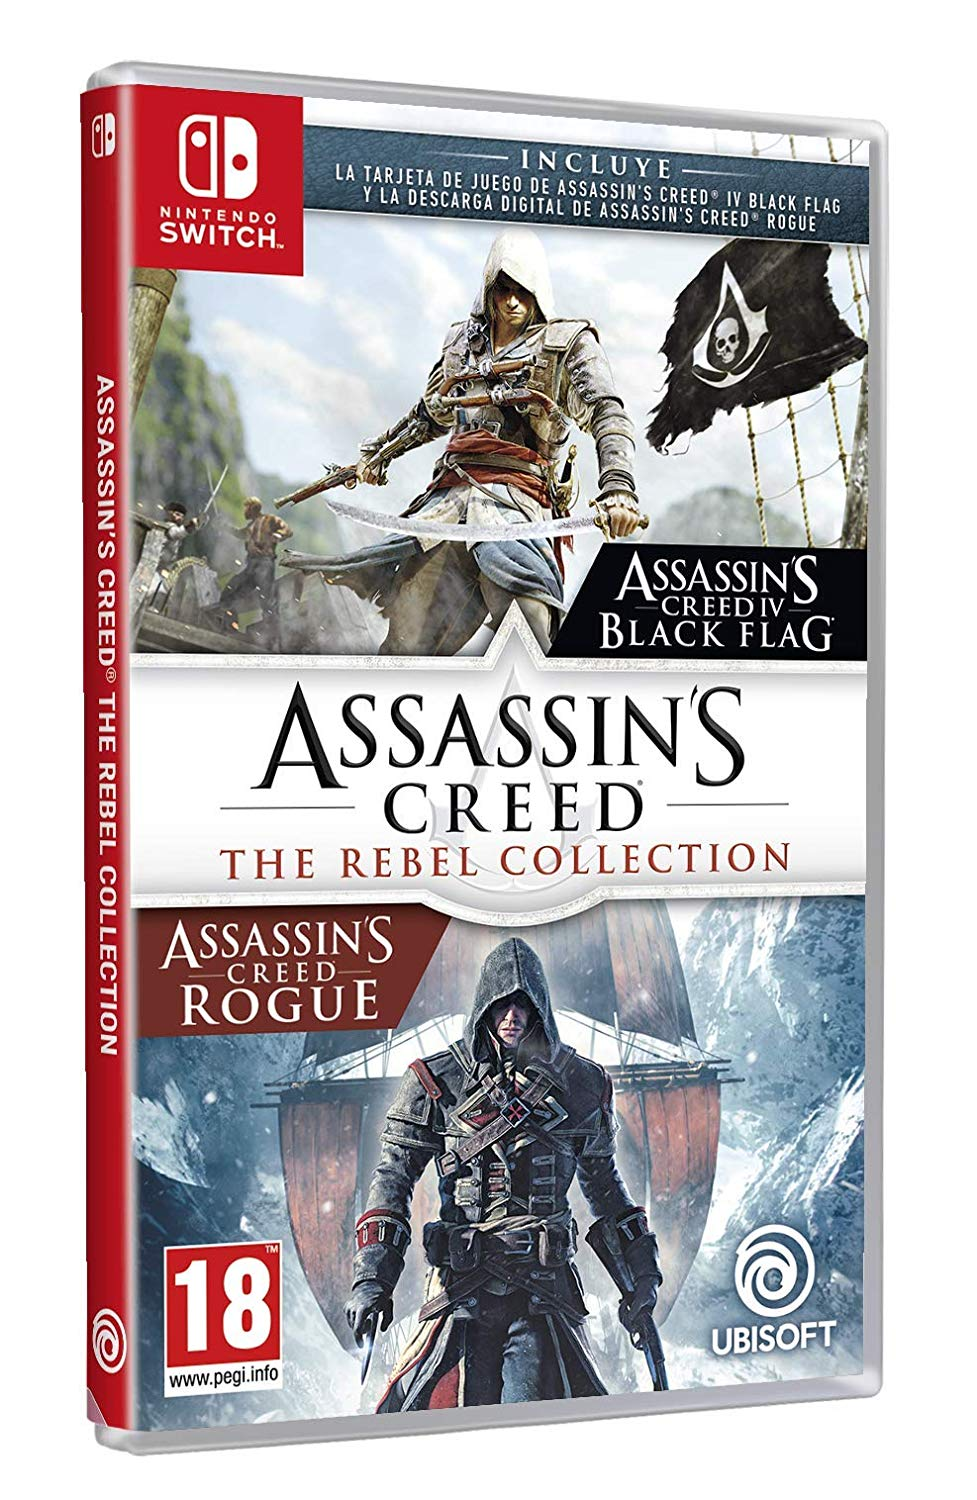 spanish assassin s creed the rebel collection boxart suggests assassin s creed rogue is a download code nintendo everything the rebel collection boxart suggests